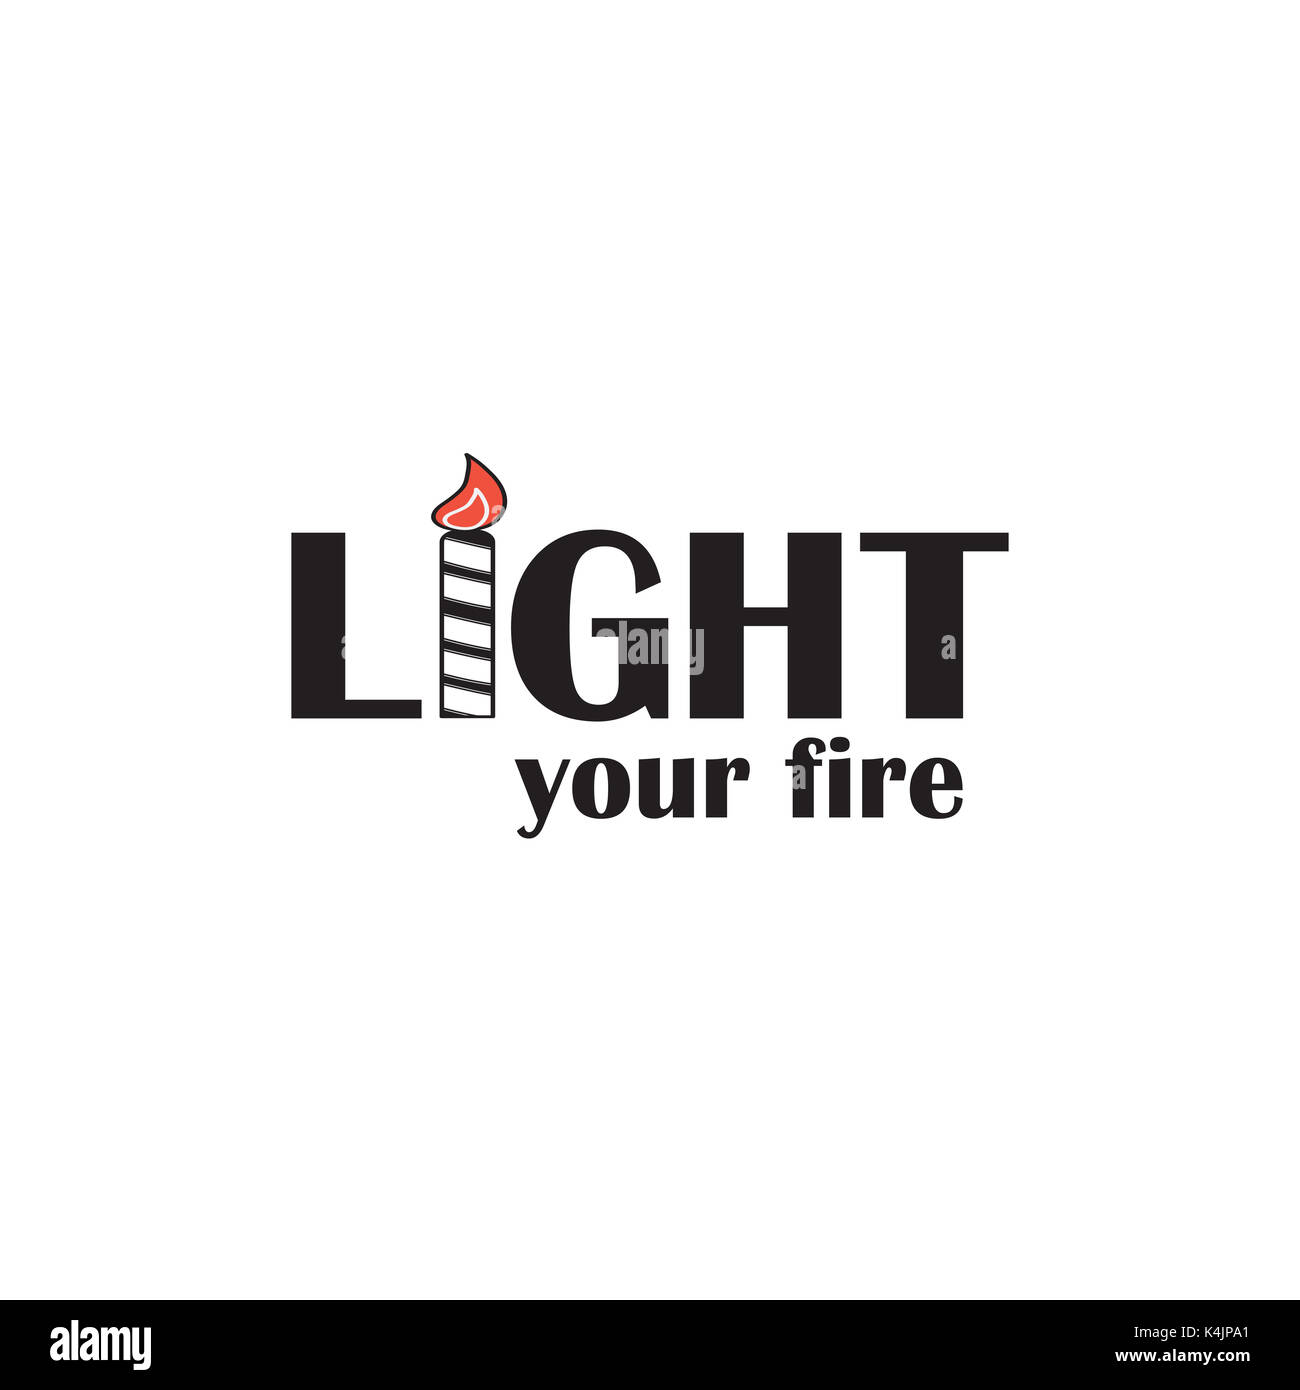 Light Your Fire Inspirational Quote Illustration Black And White